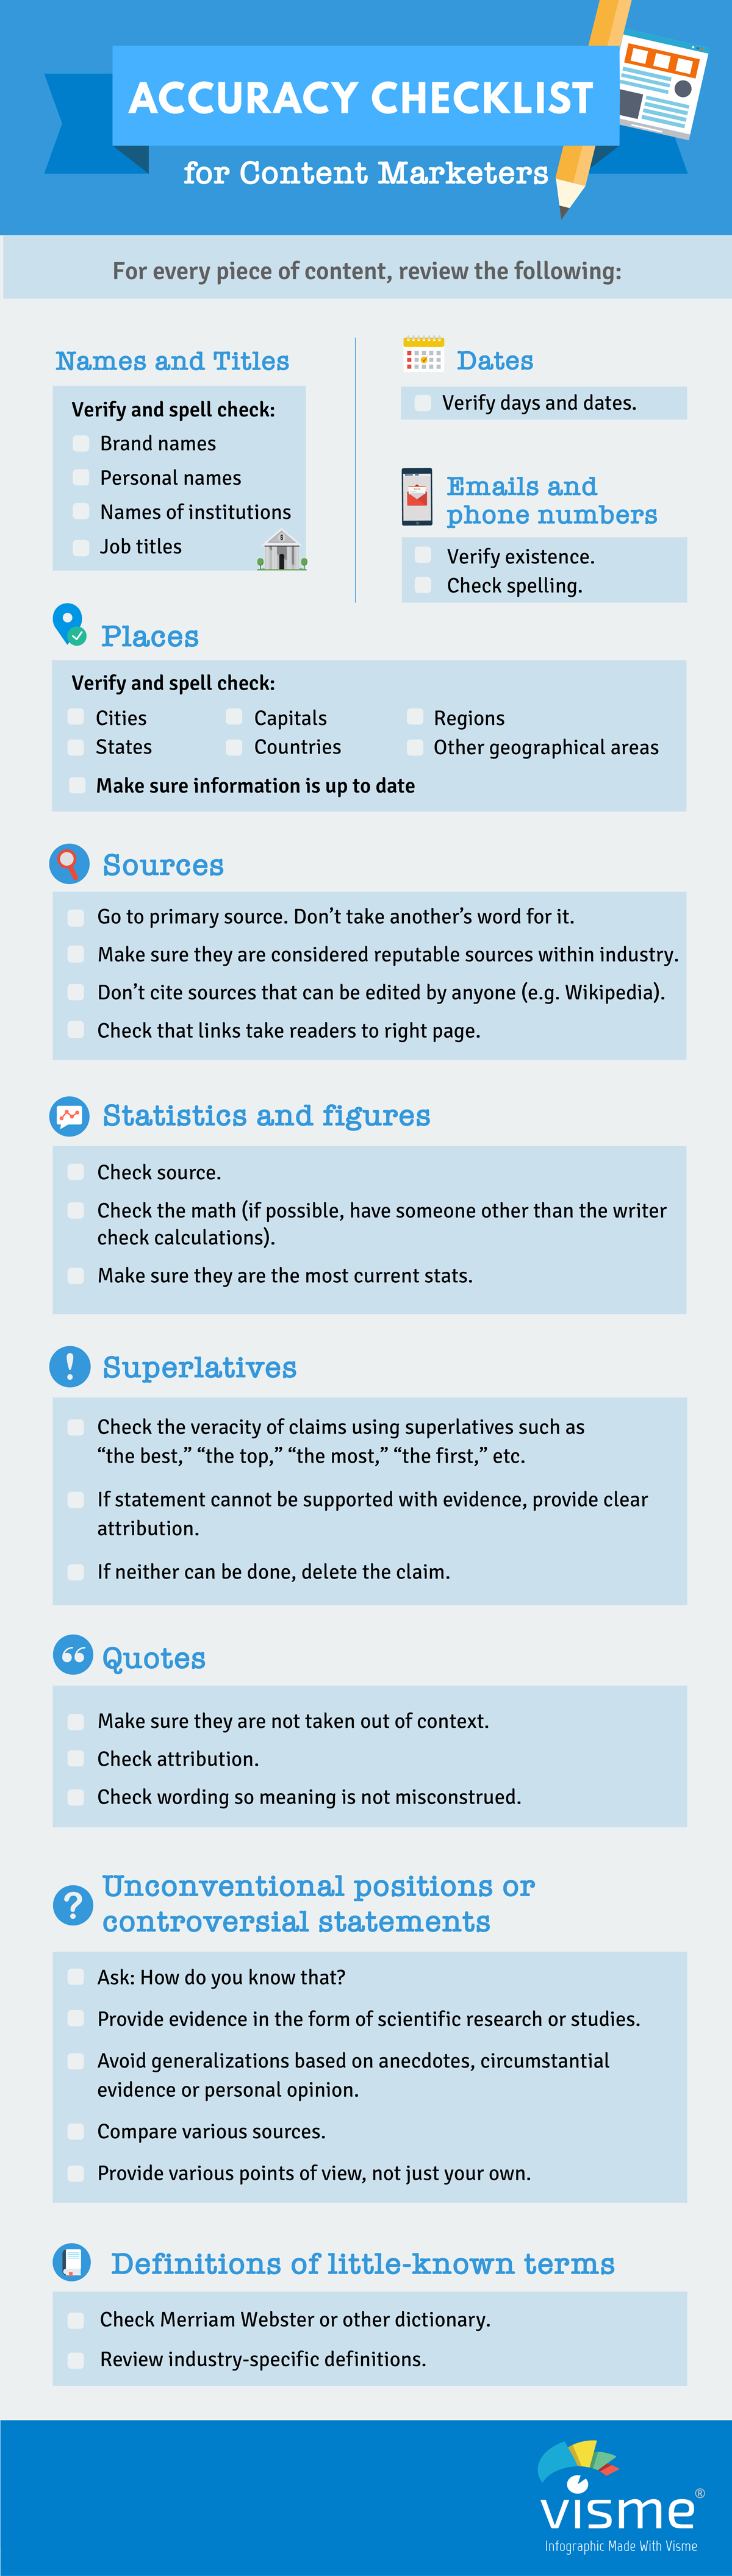 fact-checking checklist for content marketers infographic